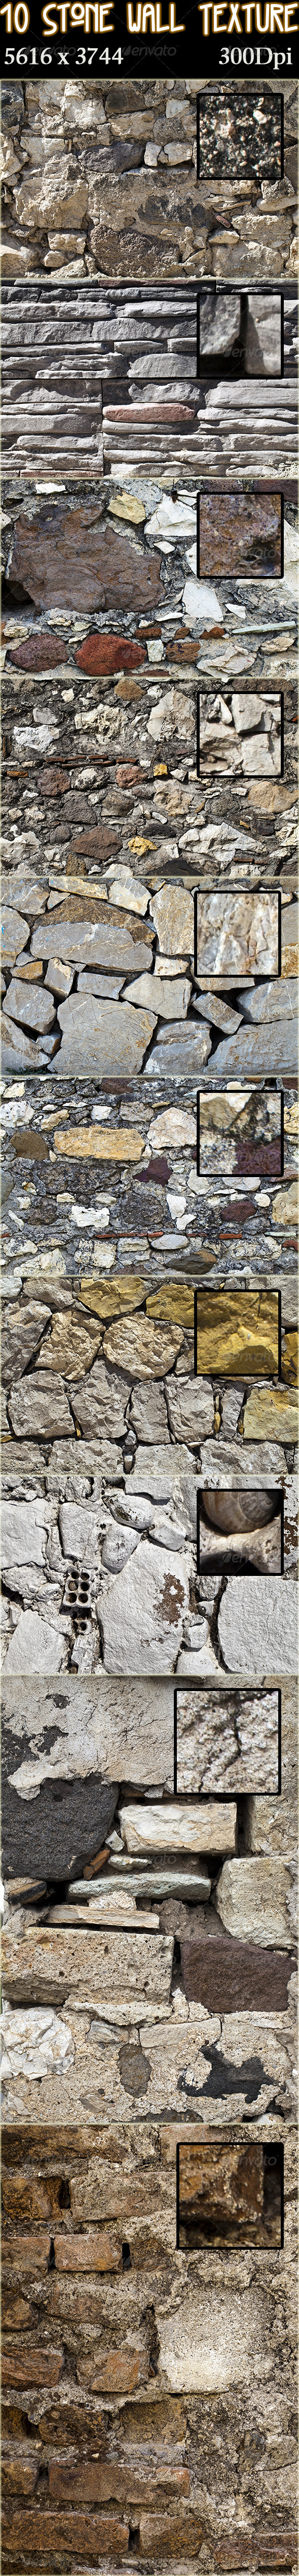 10 Stone Wall Texture Pack - Stone Textures